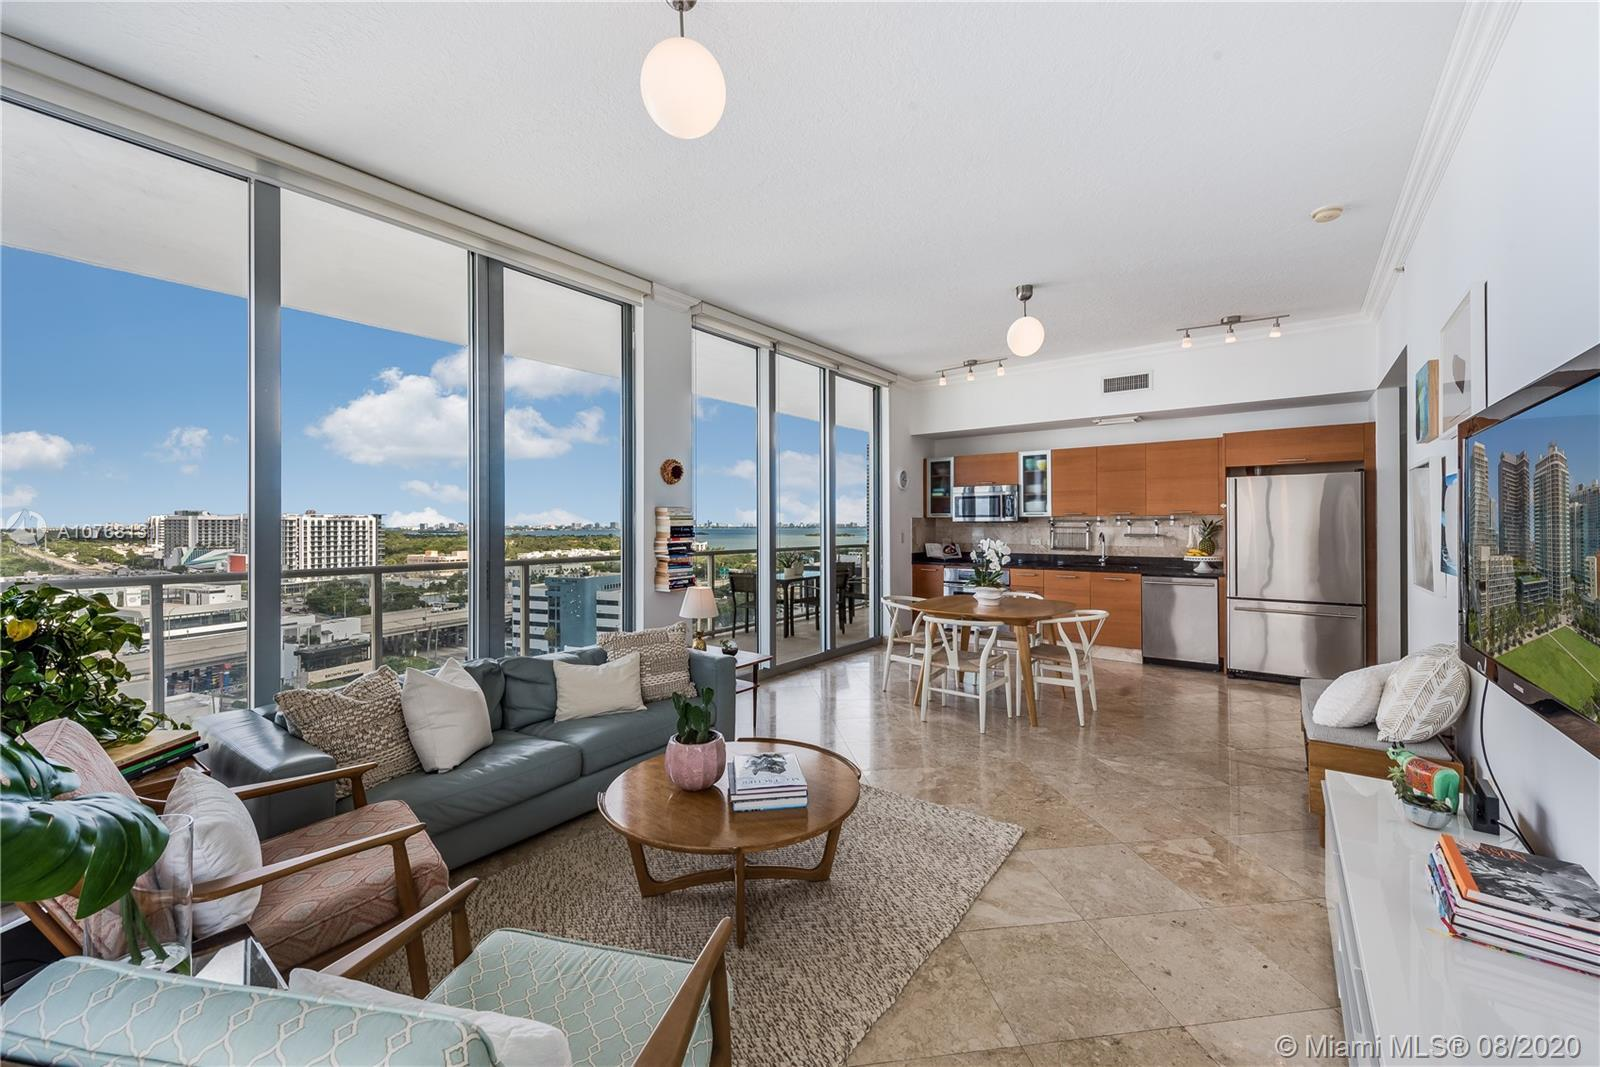 Enjoy breathtaking views of Biscayne Bay from this 3 Bed / 2 Bath residence perched above the Miami